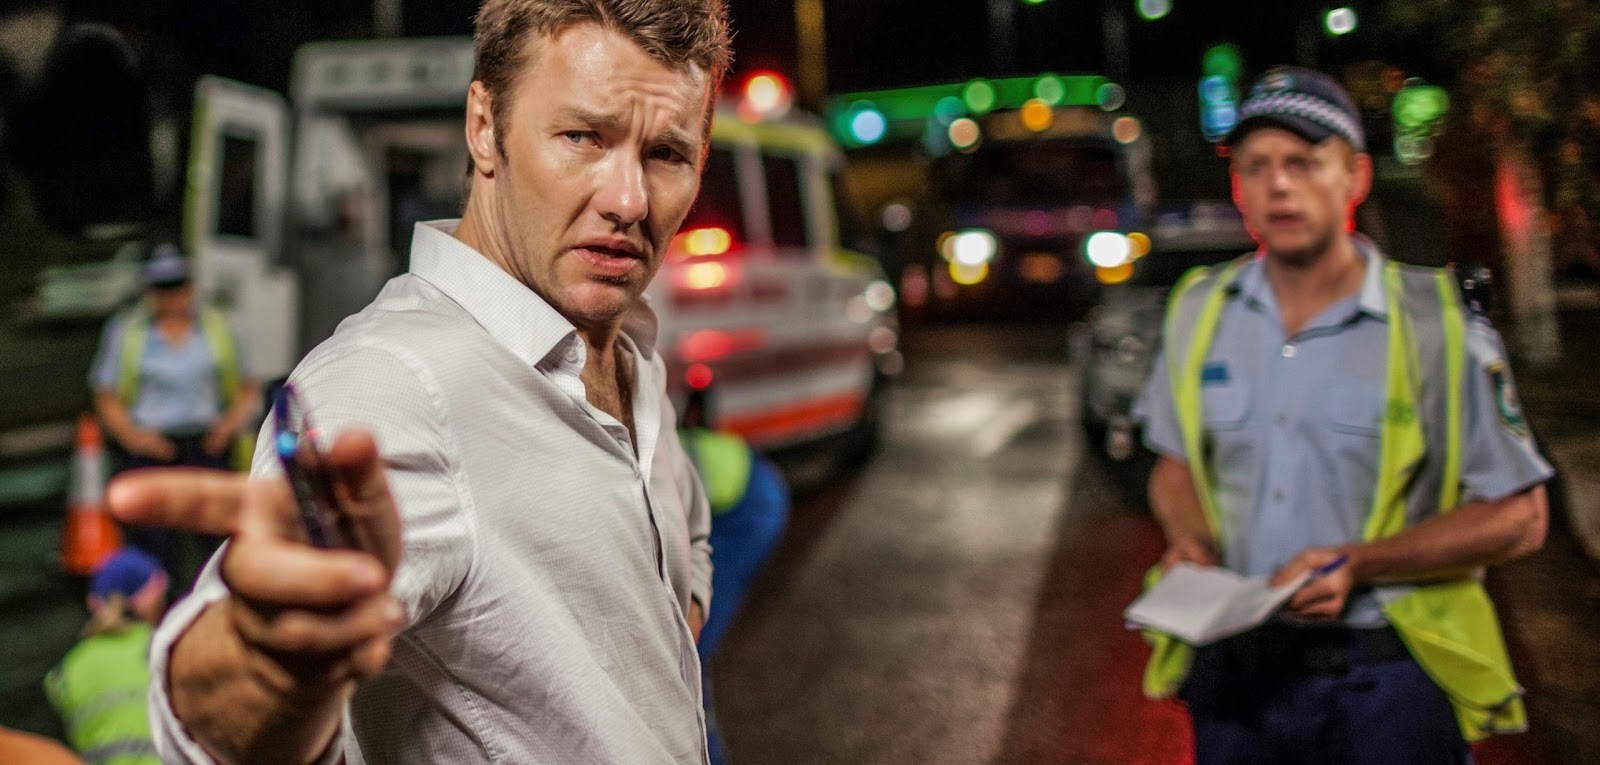 Joel Edgerton esconde um crime no trailer do suspense FELONY, com Tom Wilkinson e Jai Courtney